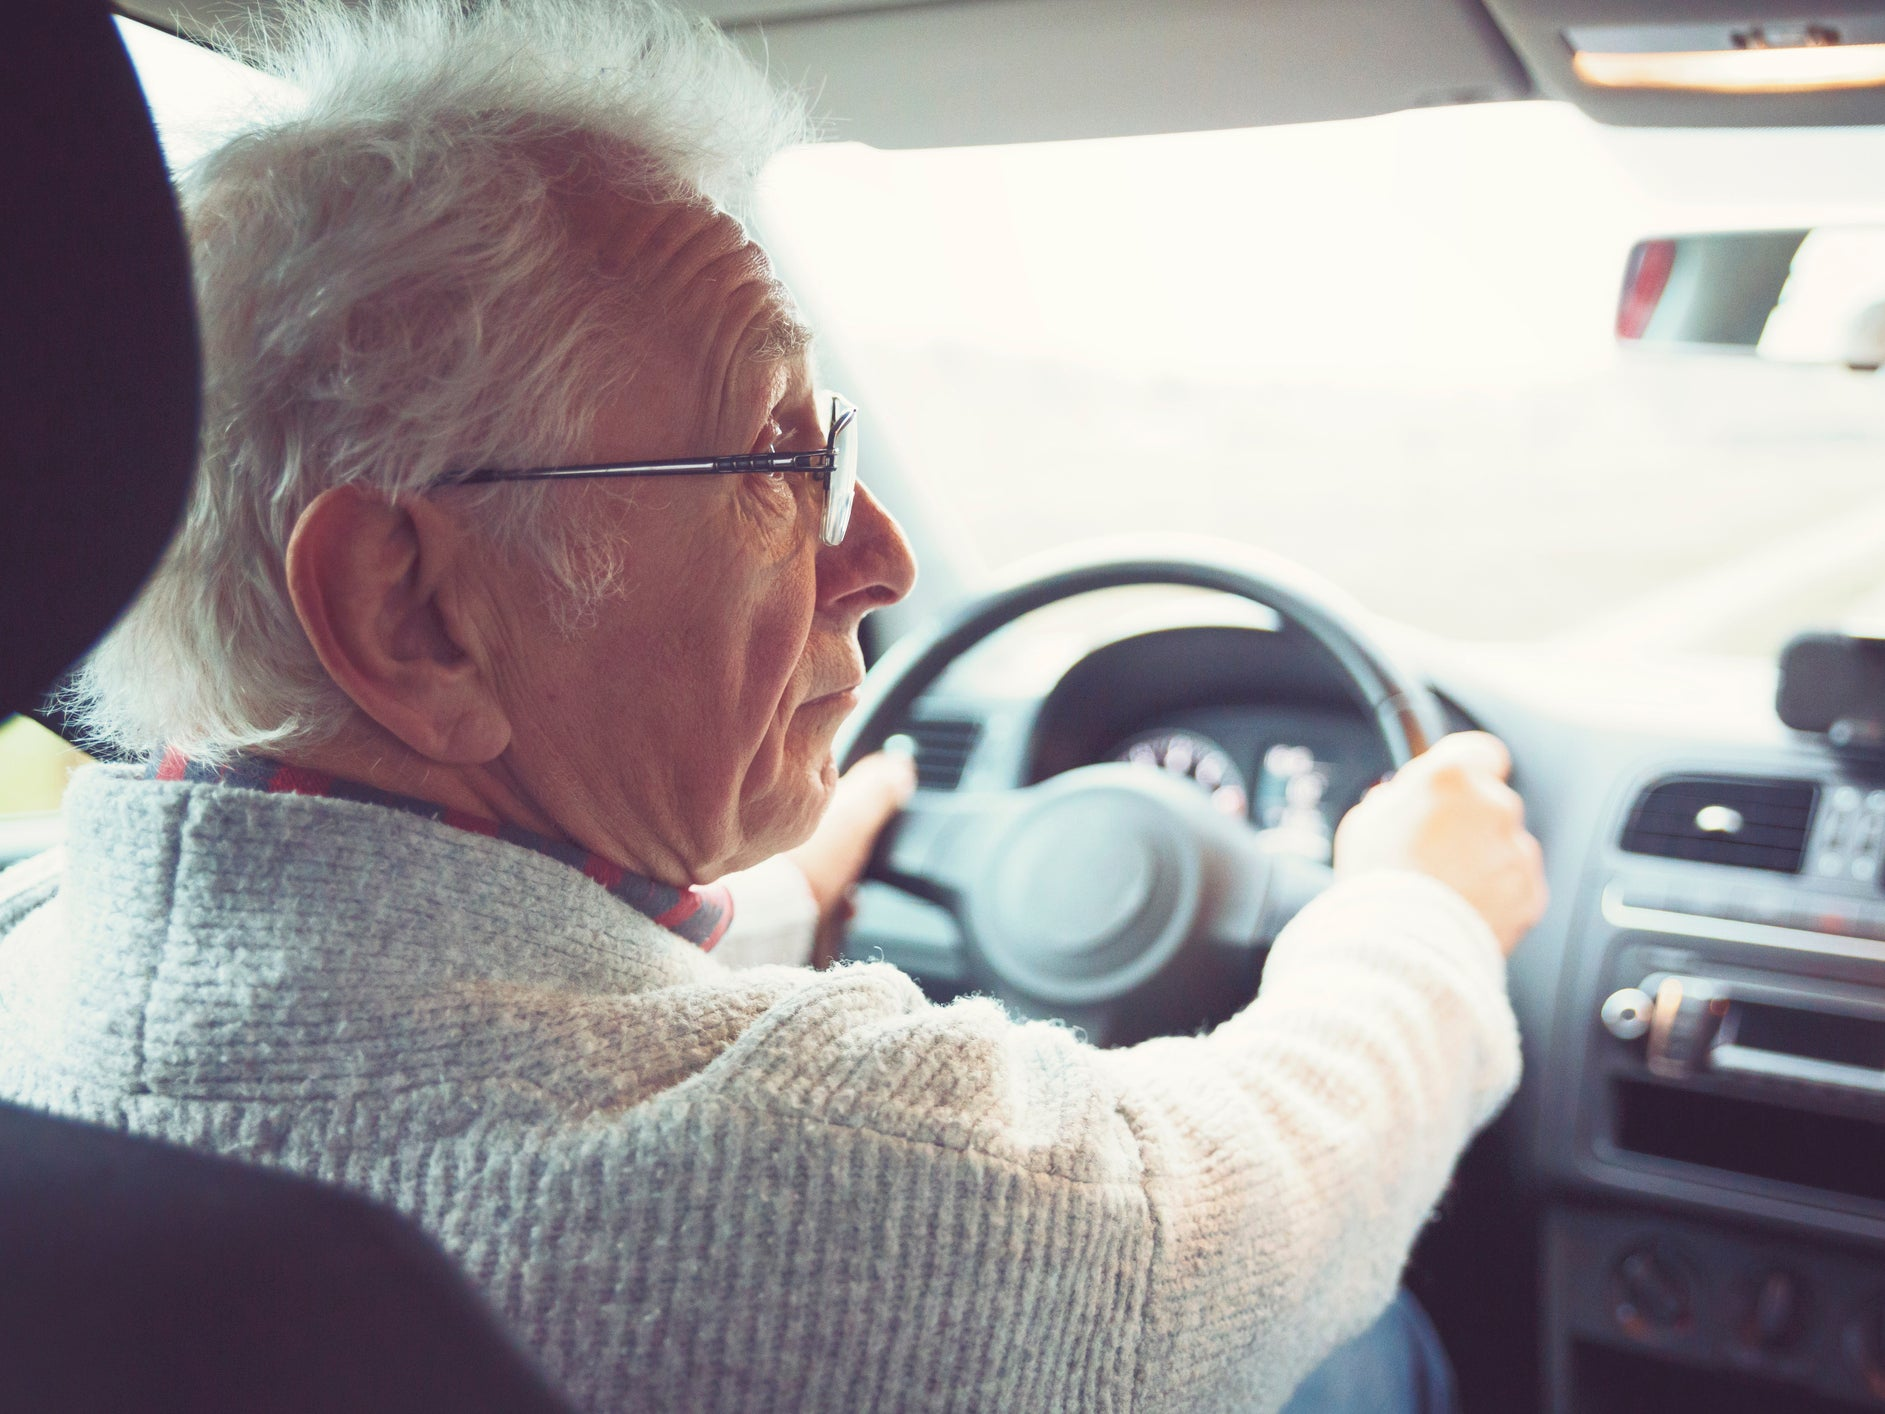 Drivers over 70 may have to take compulsory eyesight tests in future